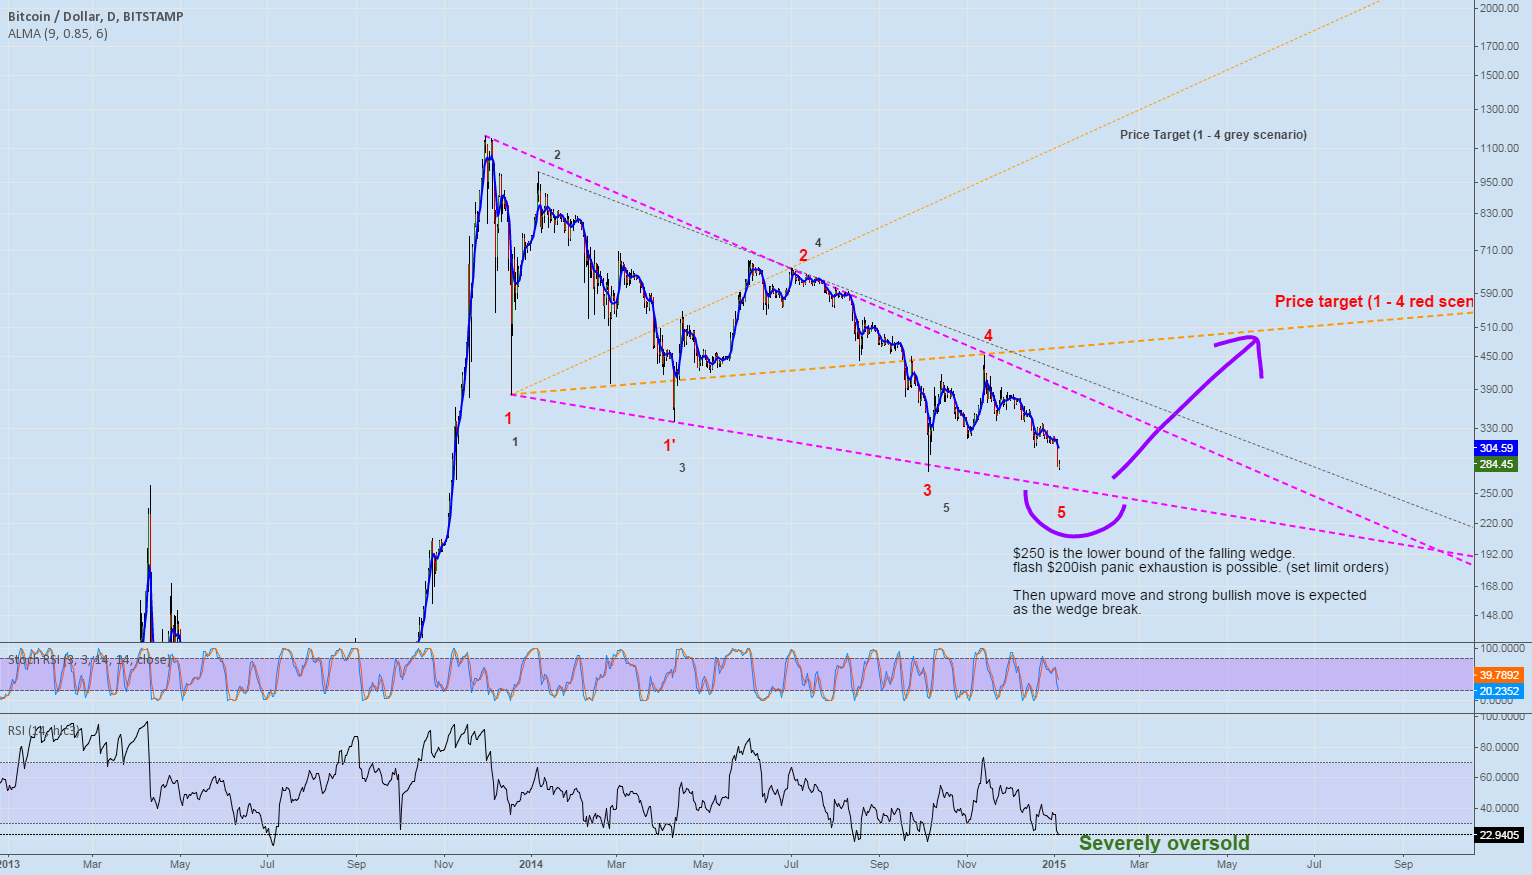 1-Year falling wedge is close to completion.